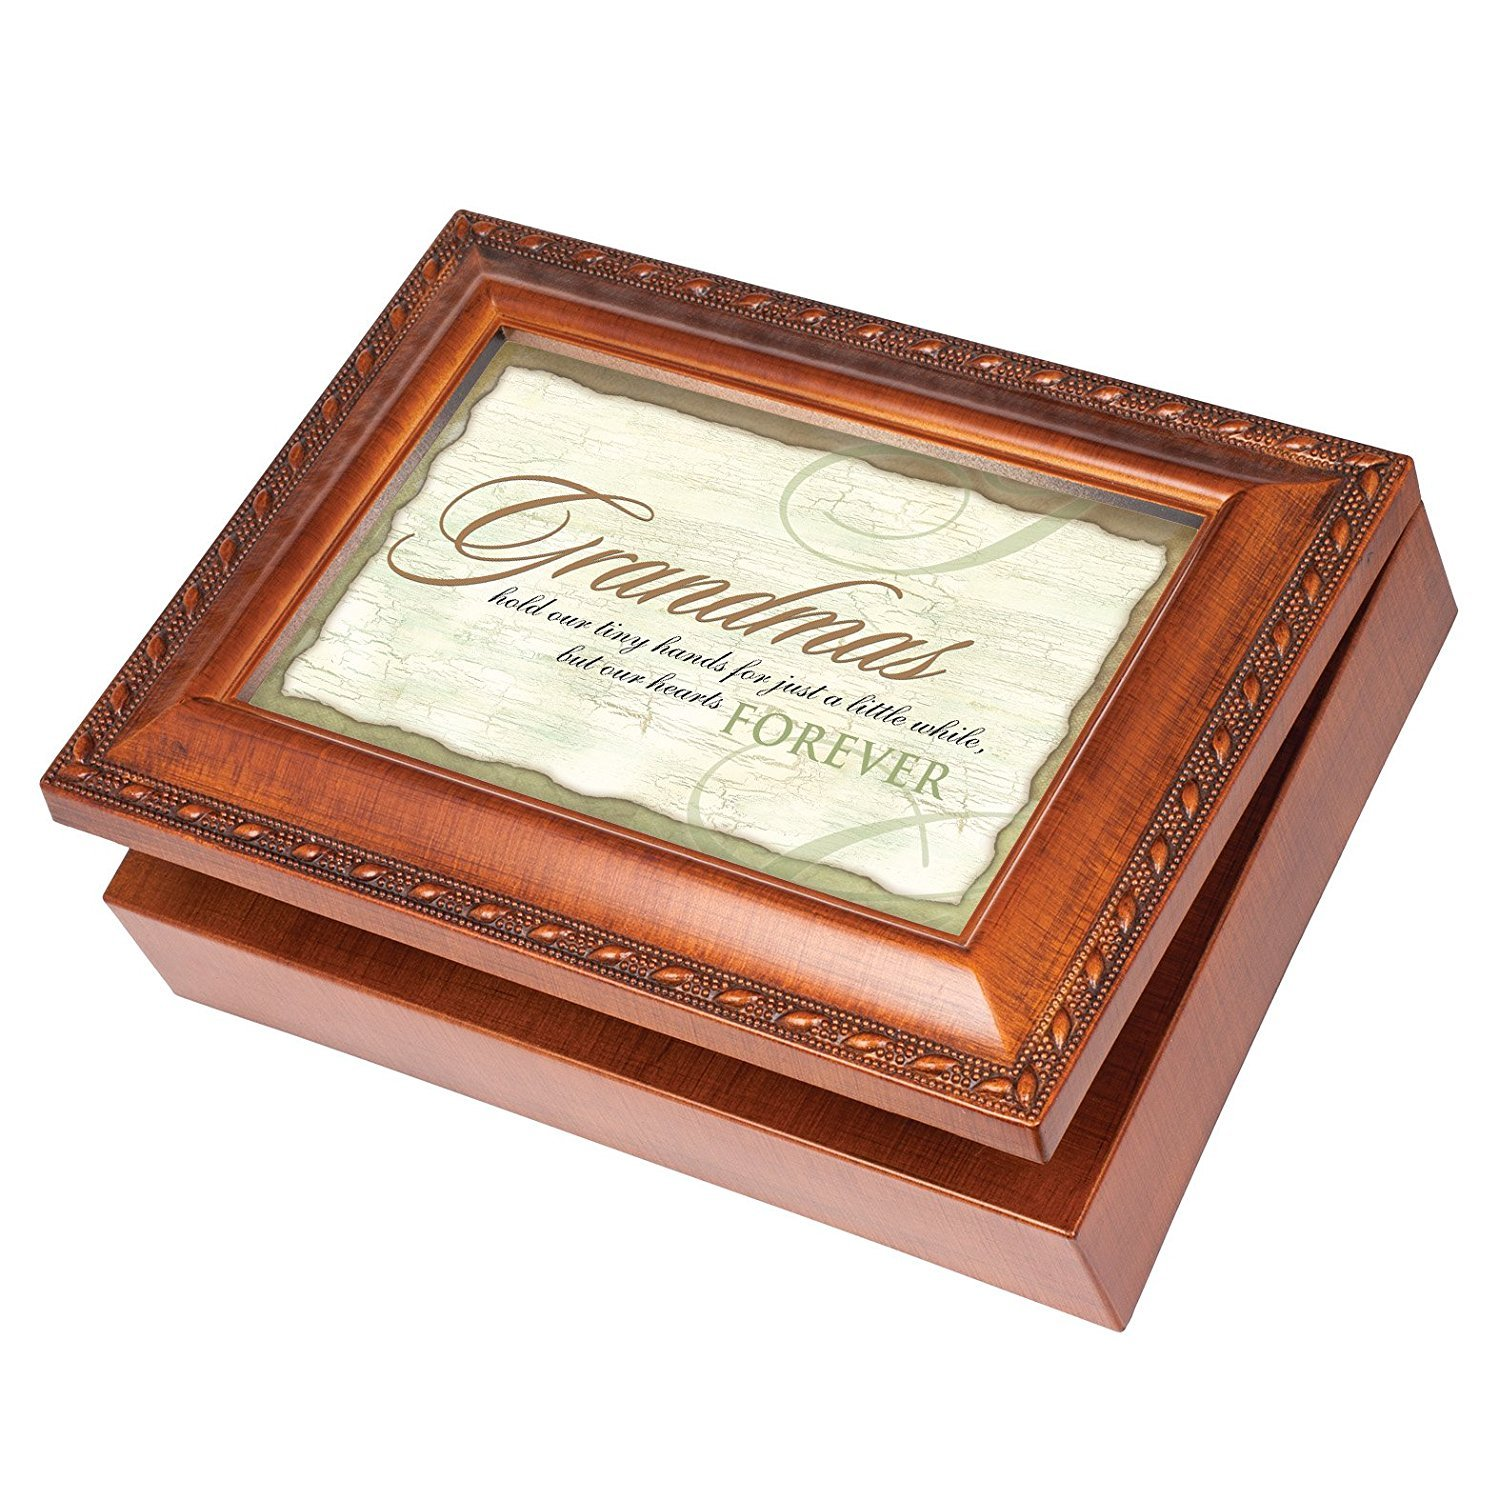 新着商品 Grandmas Forever Wood Finish Jewellery Are Finish Music Music Box Plays Tune You Are My Sunshine B0117R5SEC, ヤツシロシ:341d82f8 --- arcego.dominiotemporario.com